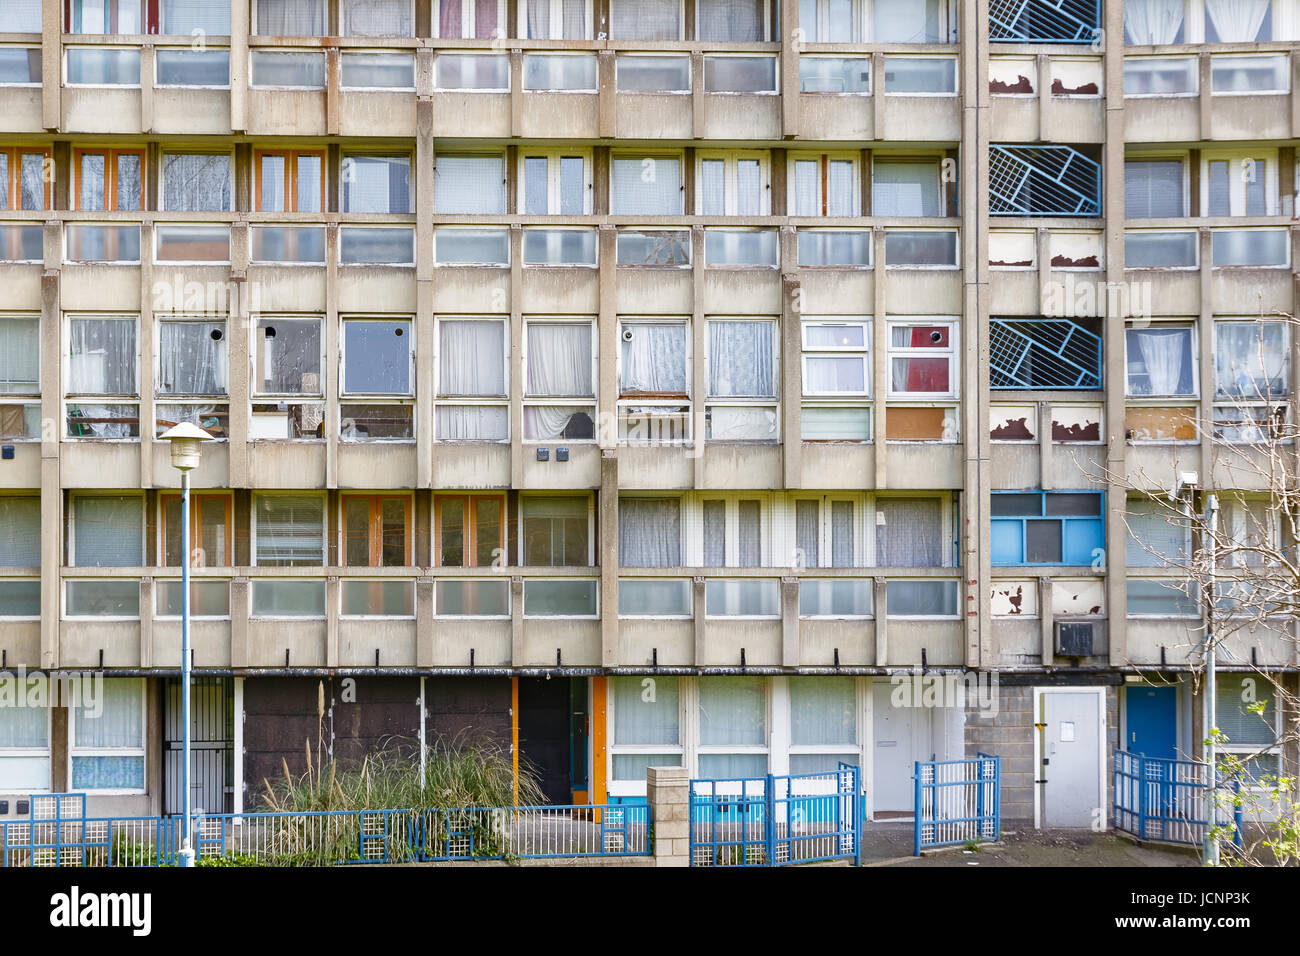 Dilapidated council flat housing block, Robin Hood Gardens, in East London Stock Photo